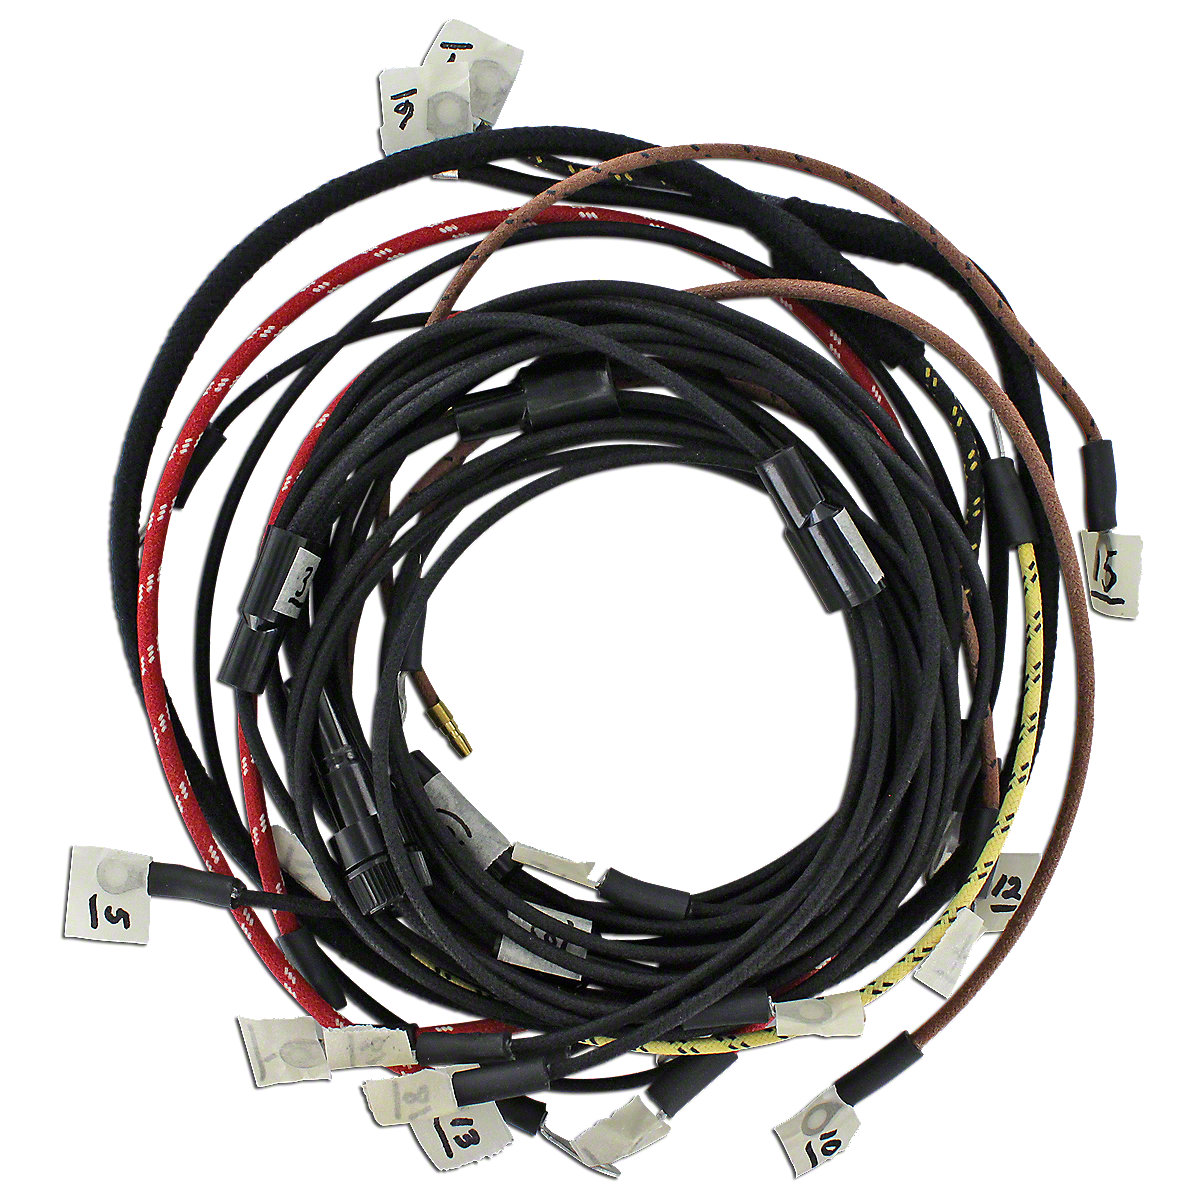 wiring harness for massey ferguson f40 65 50. Black Bedroom Furniture Sets. Home Design Ideas